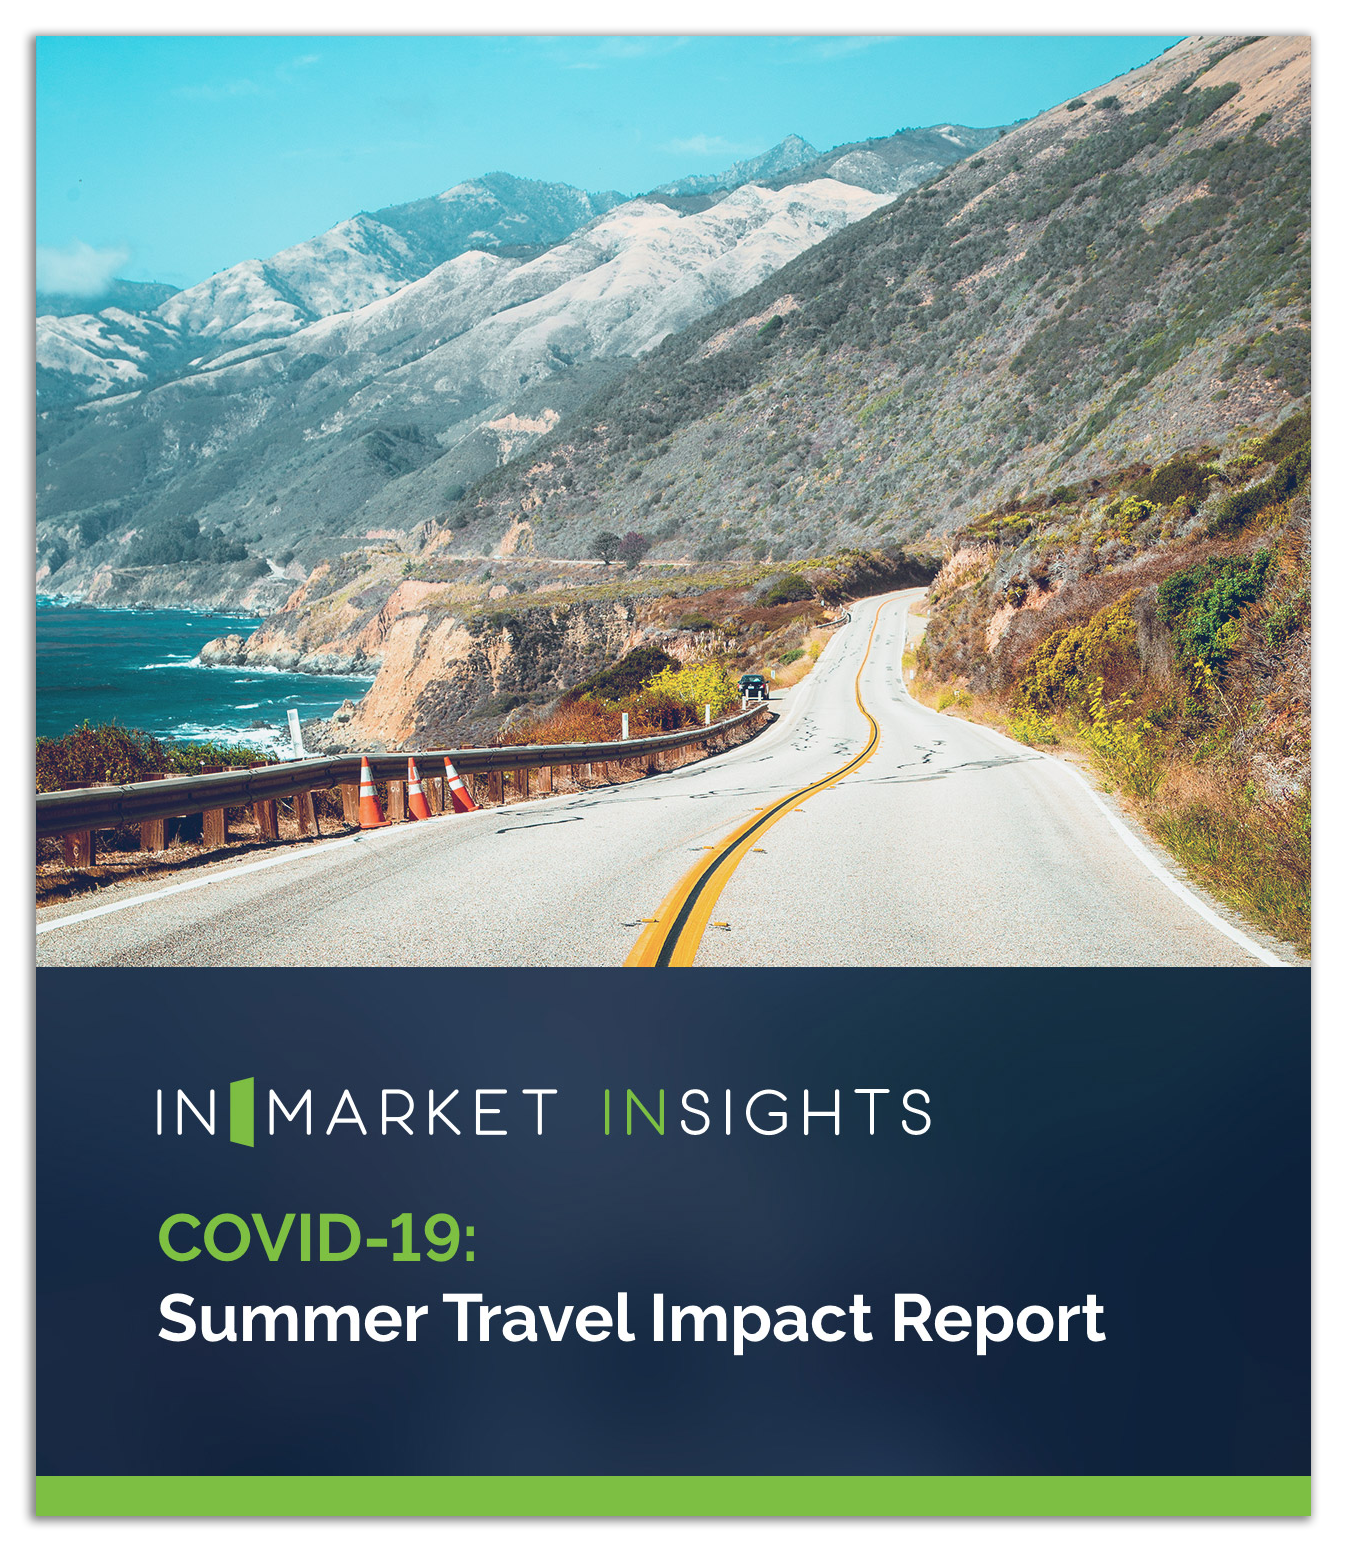 C-19 Summer Travel Impact Report Cover Photo-Shadowed